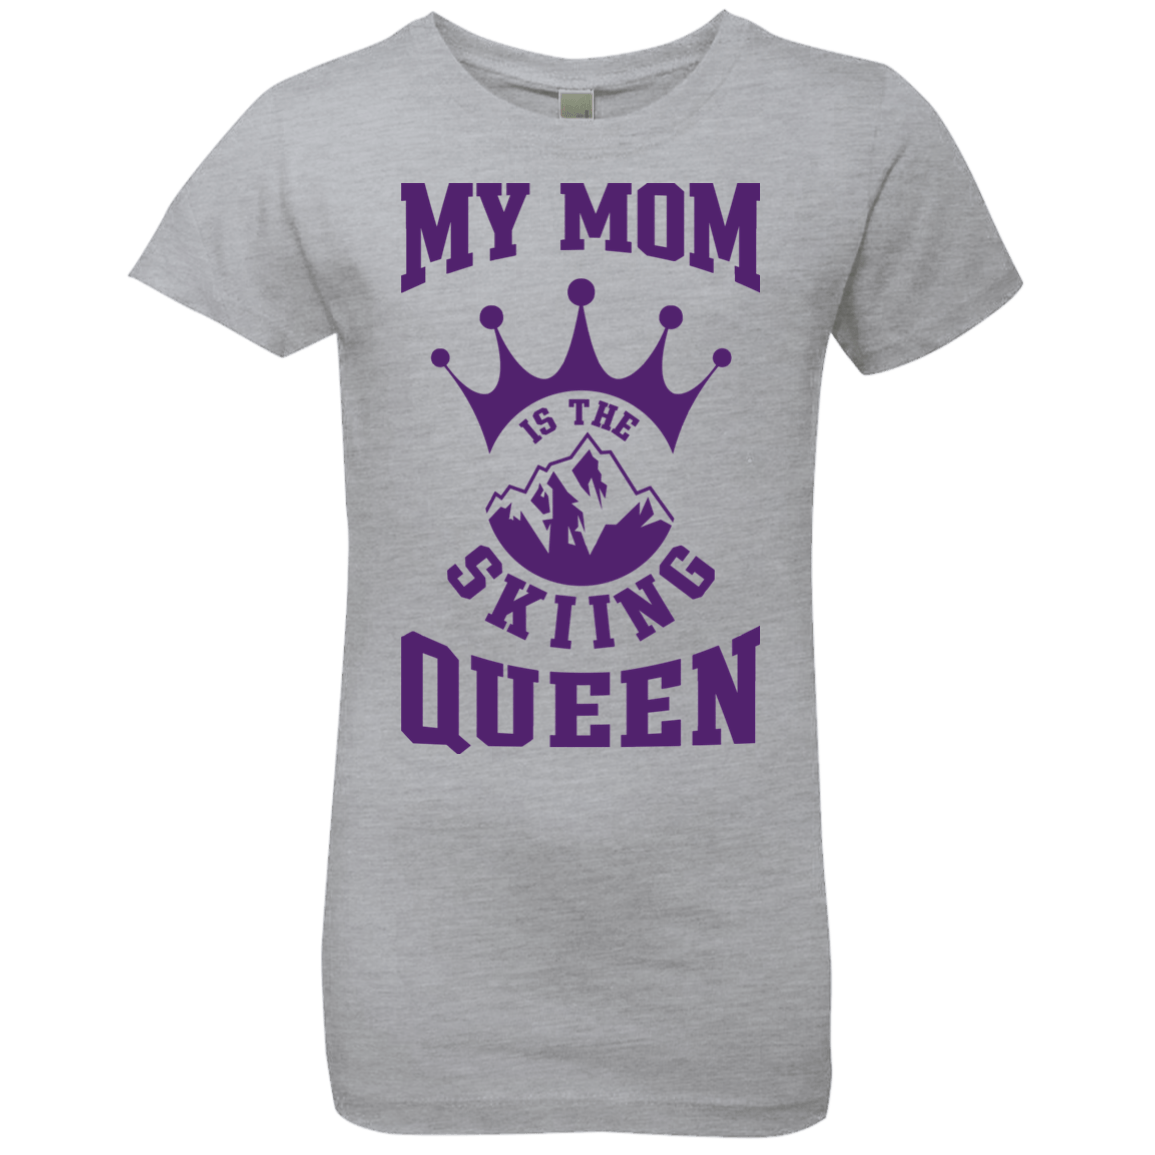 My Mom Is The Skiing Queen Purple Youth Next Level Girls' Princess T-Shirt - Powderaddicts